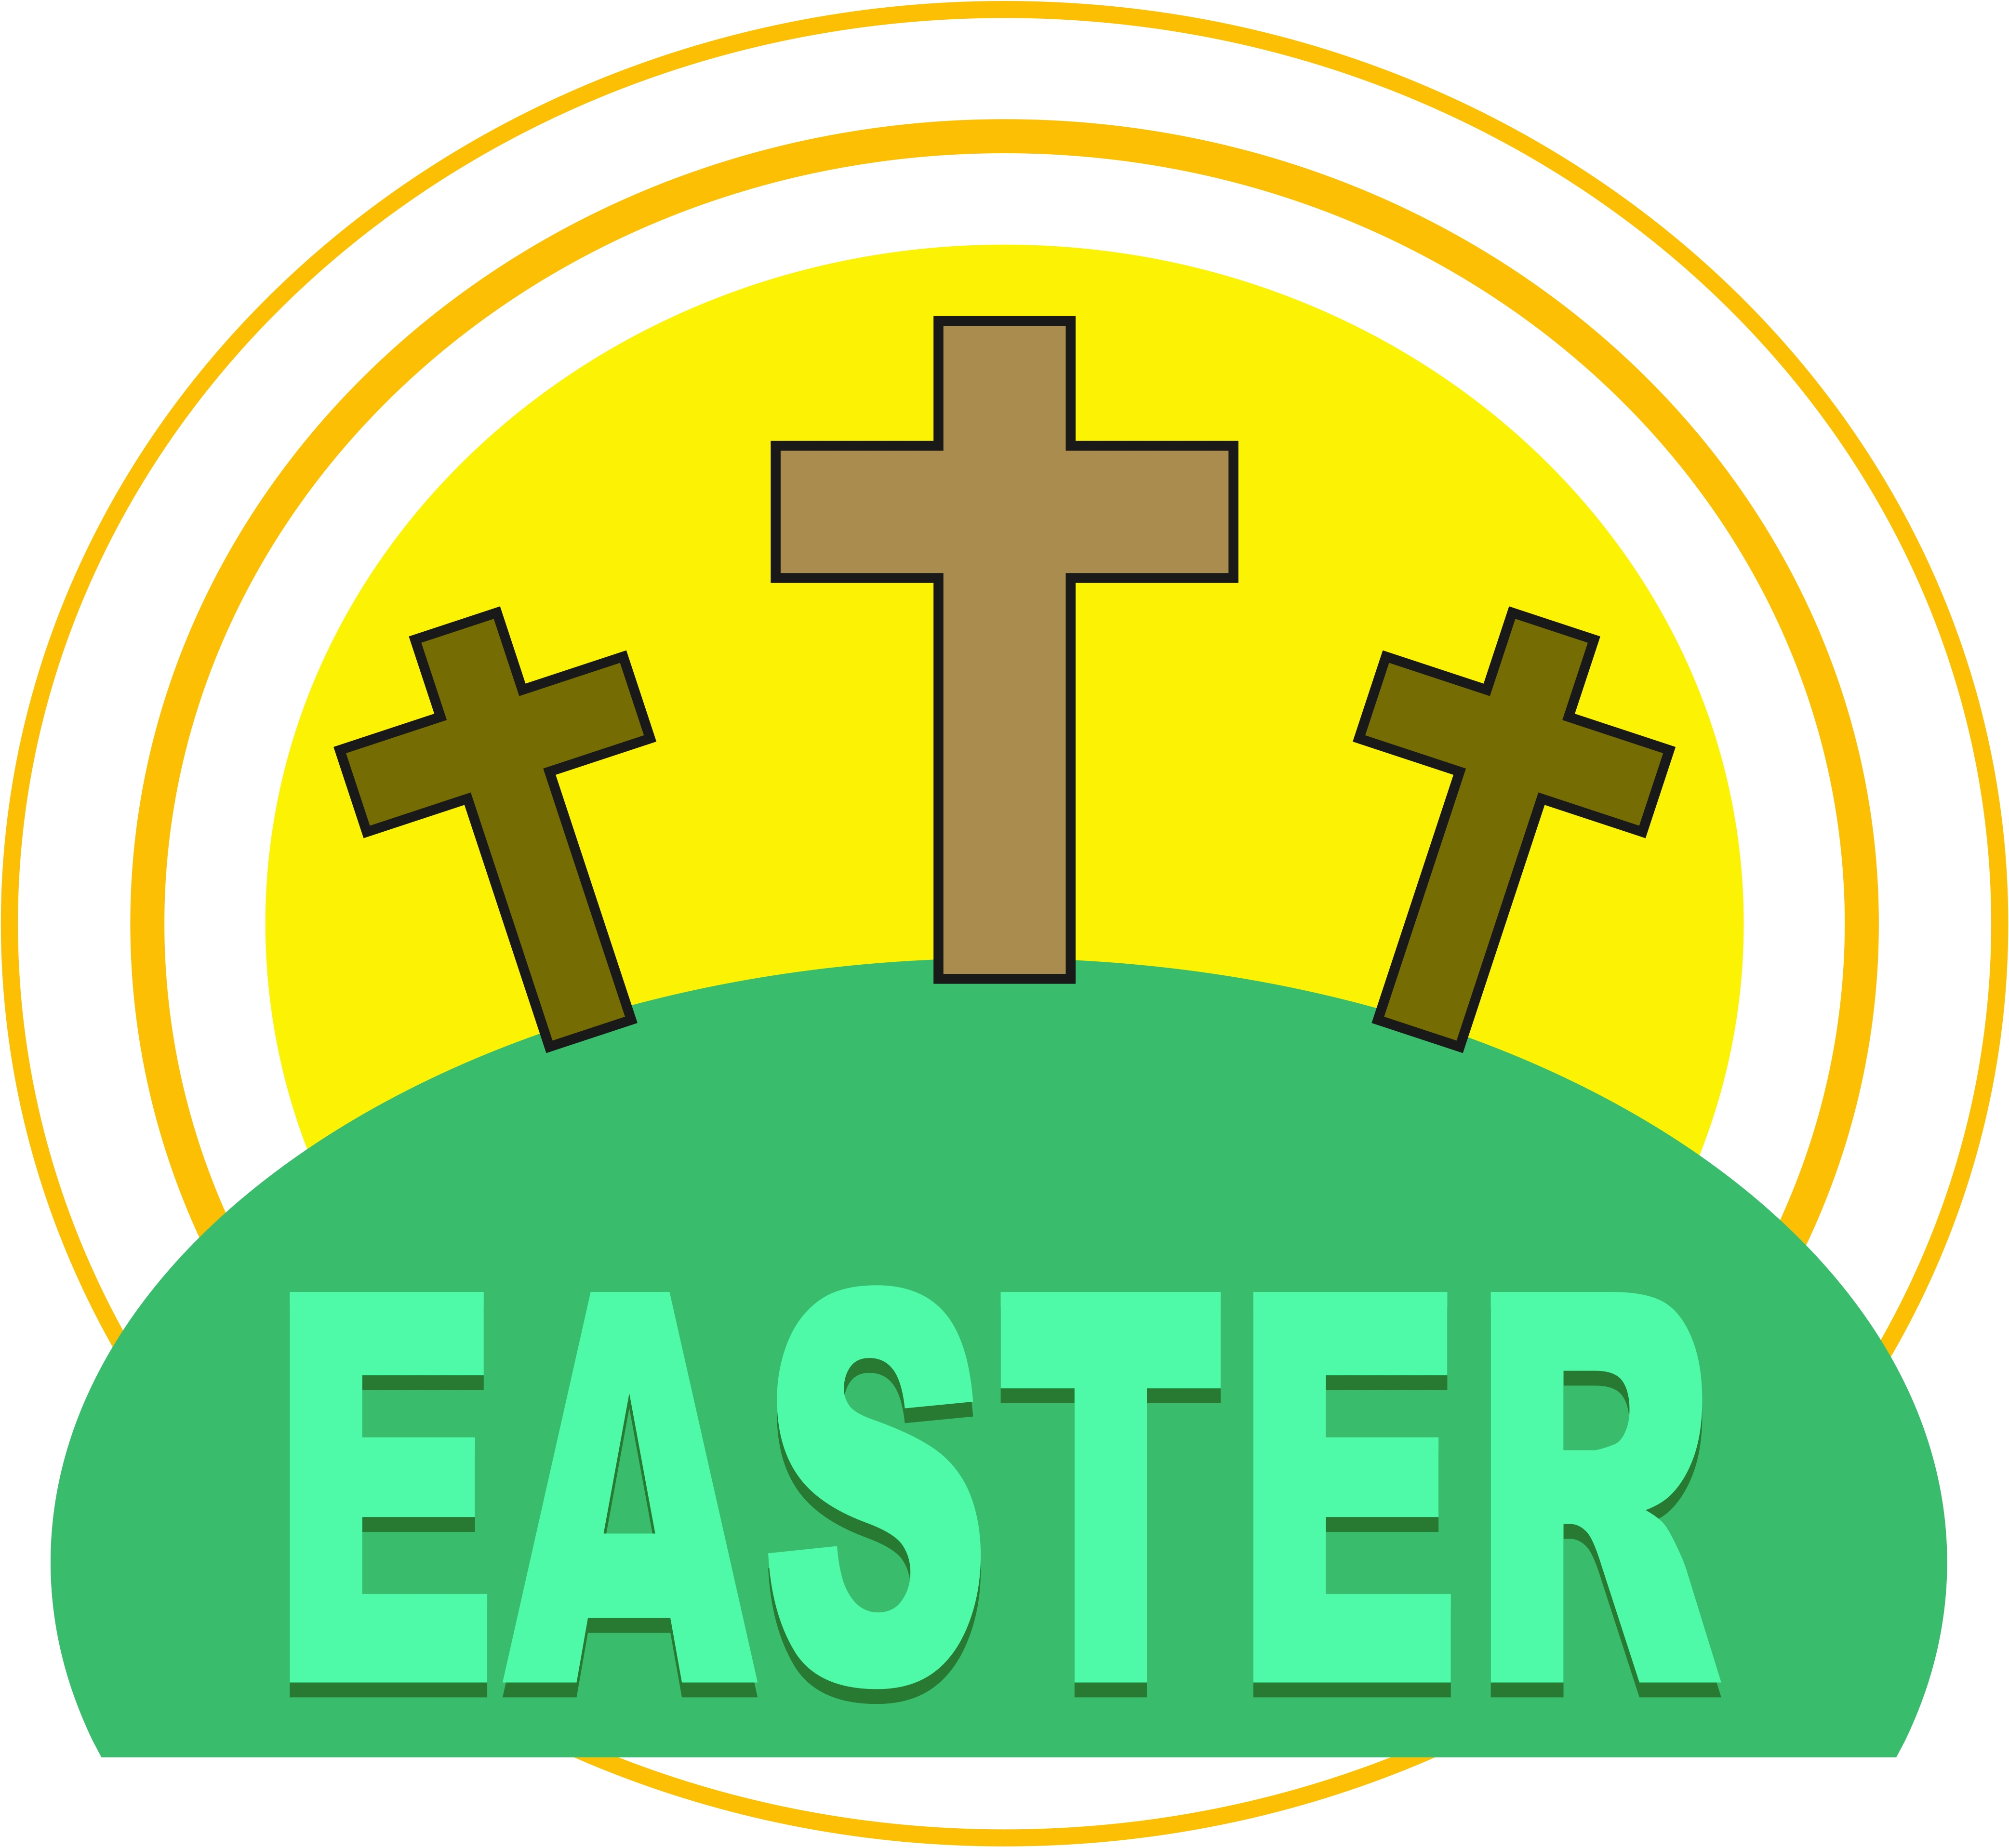 4169x3835 Easter Pictures Religious Clip Art Religious Easter Clip Art